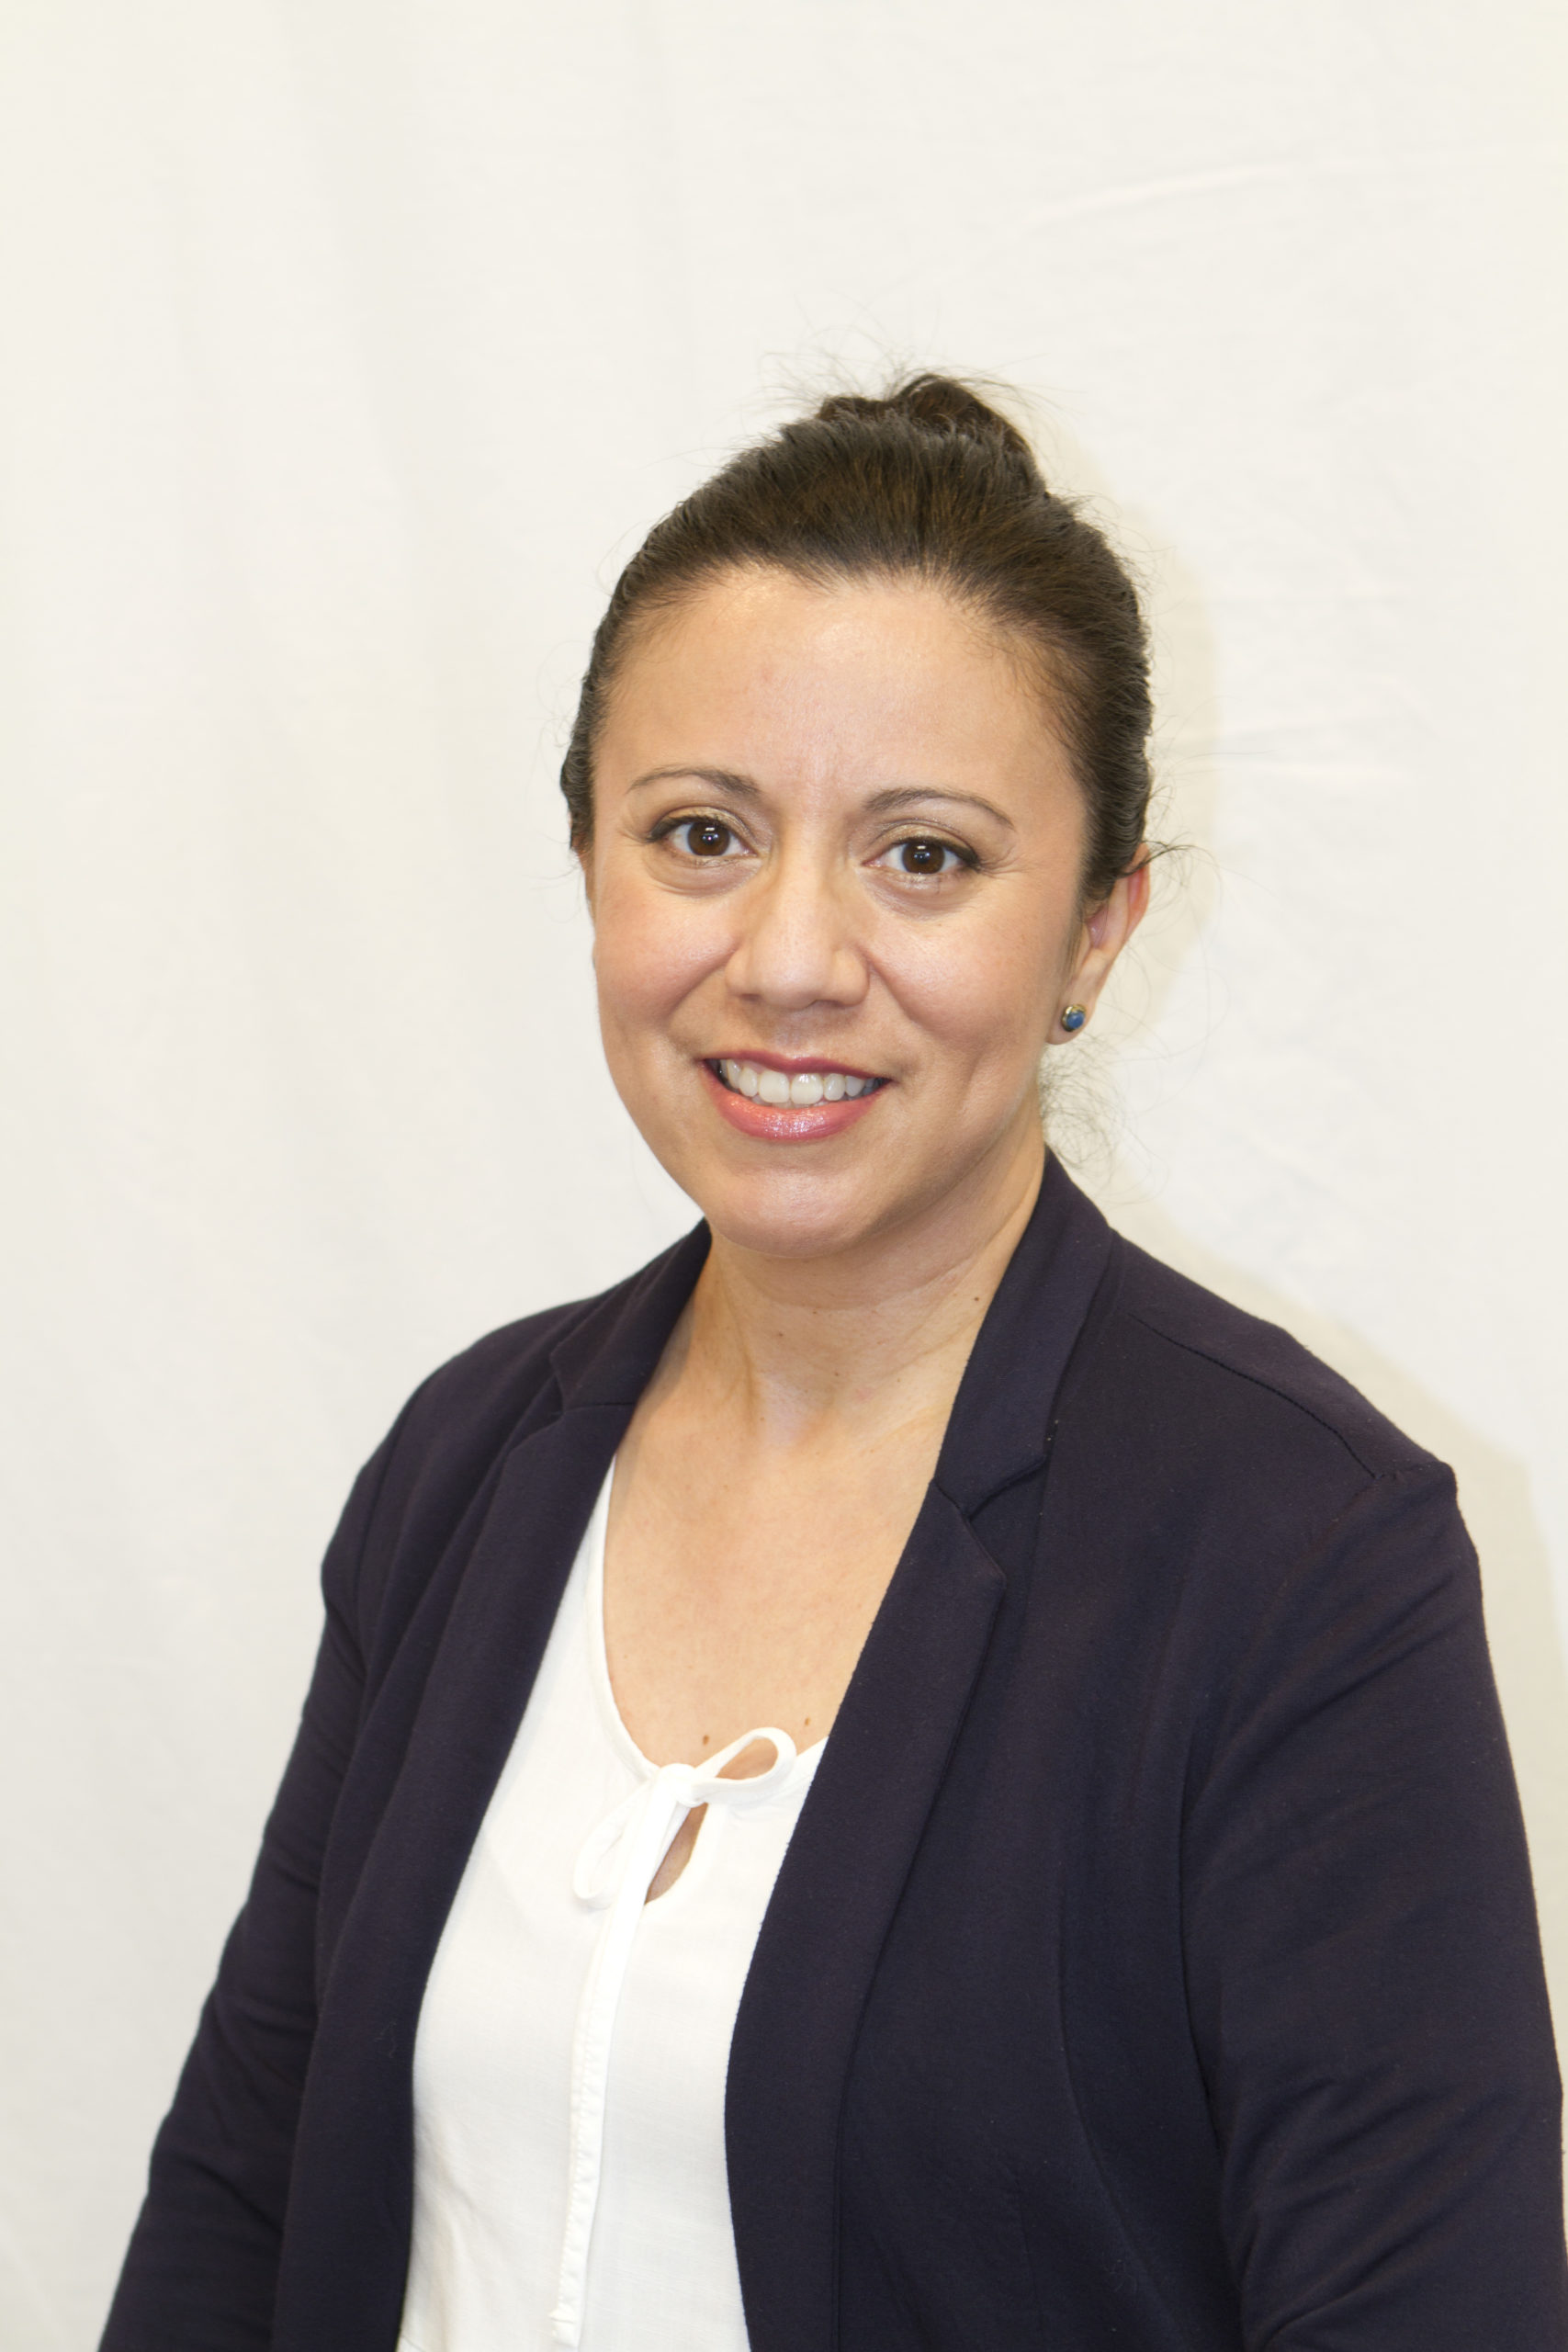 Erica MacMitchell Patient Care Manager